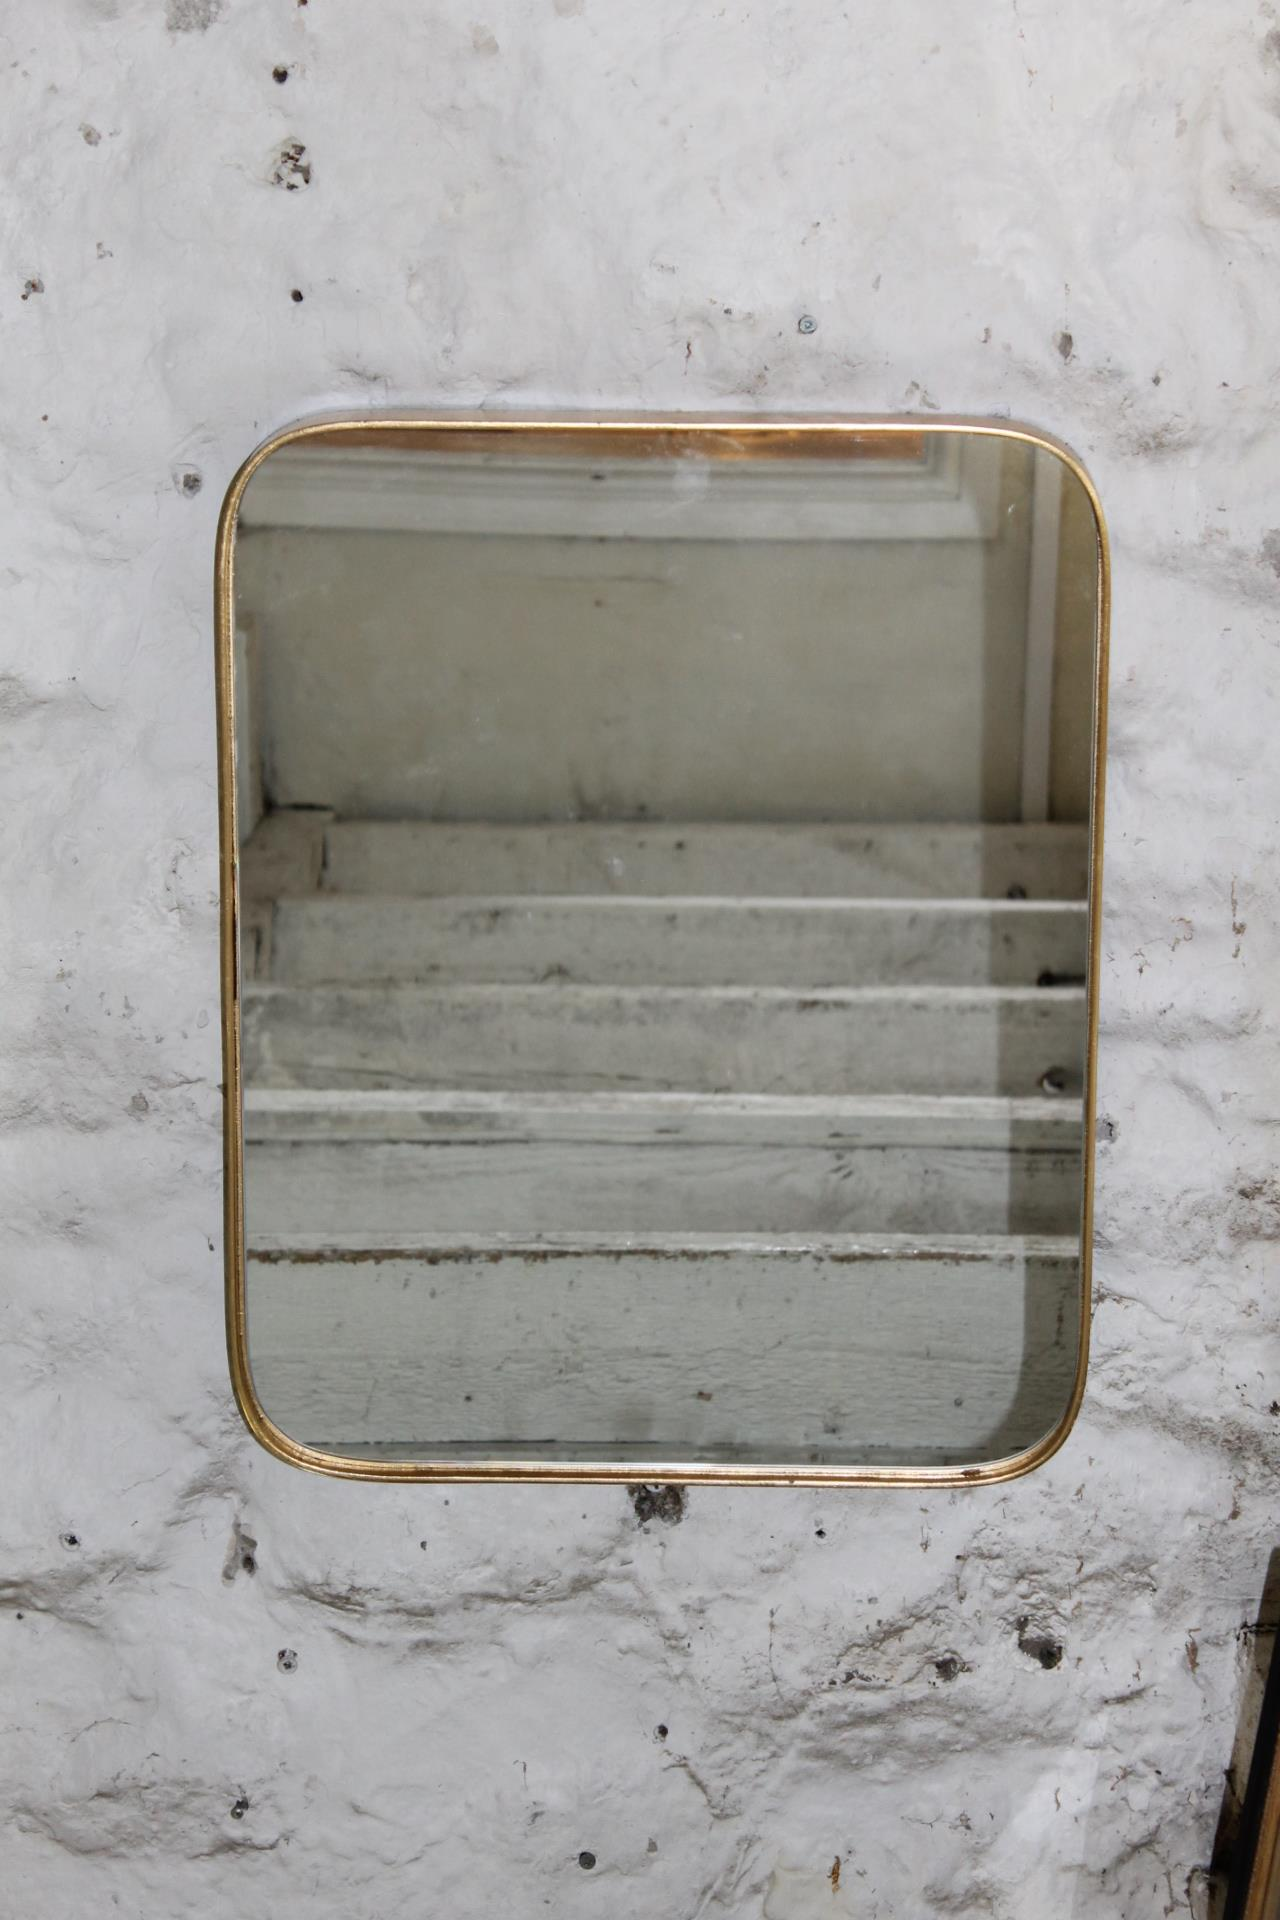 50cms x 40cms.imported 'gold framed mirror    £79.00  60cms x 50cms imported  'gold' framed mirror  £100.00